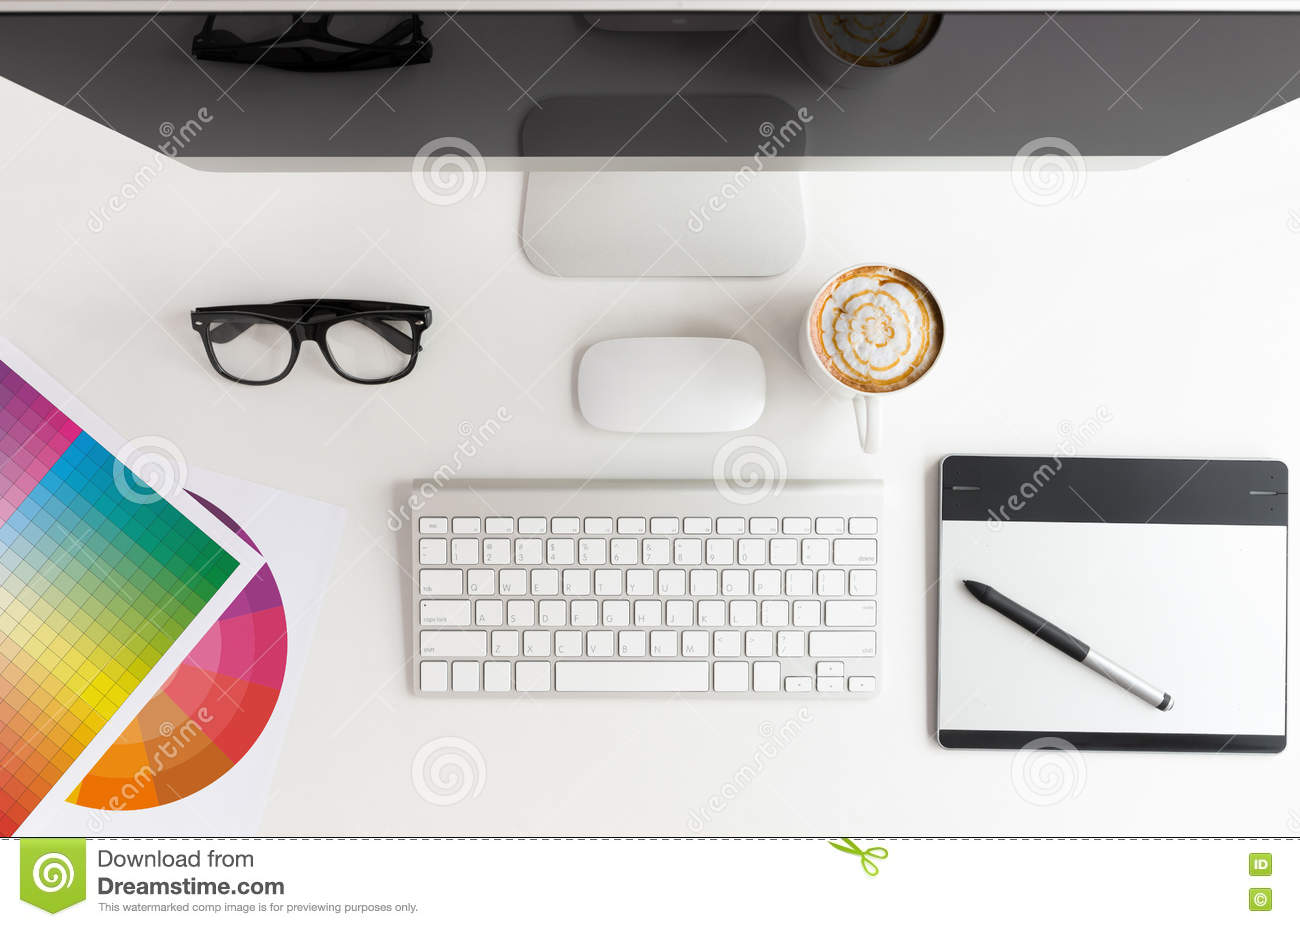 Best Kitchen Gallery: Designer Workspace White Table On Top Stock Photo Image Of Above of Graphic Design Workspace  on rachelxblog.com